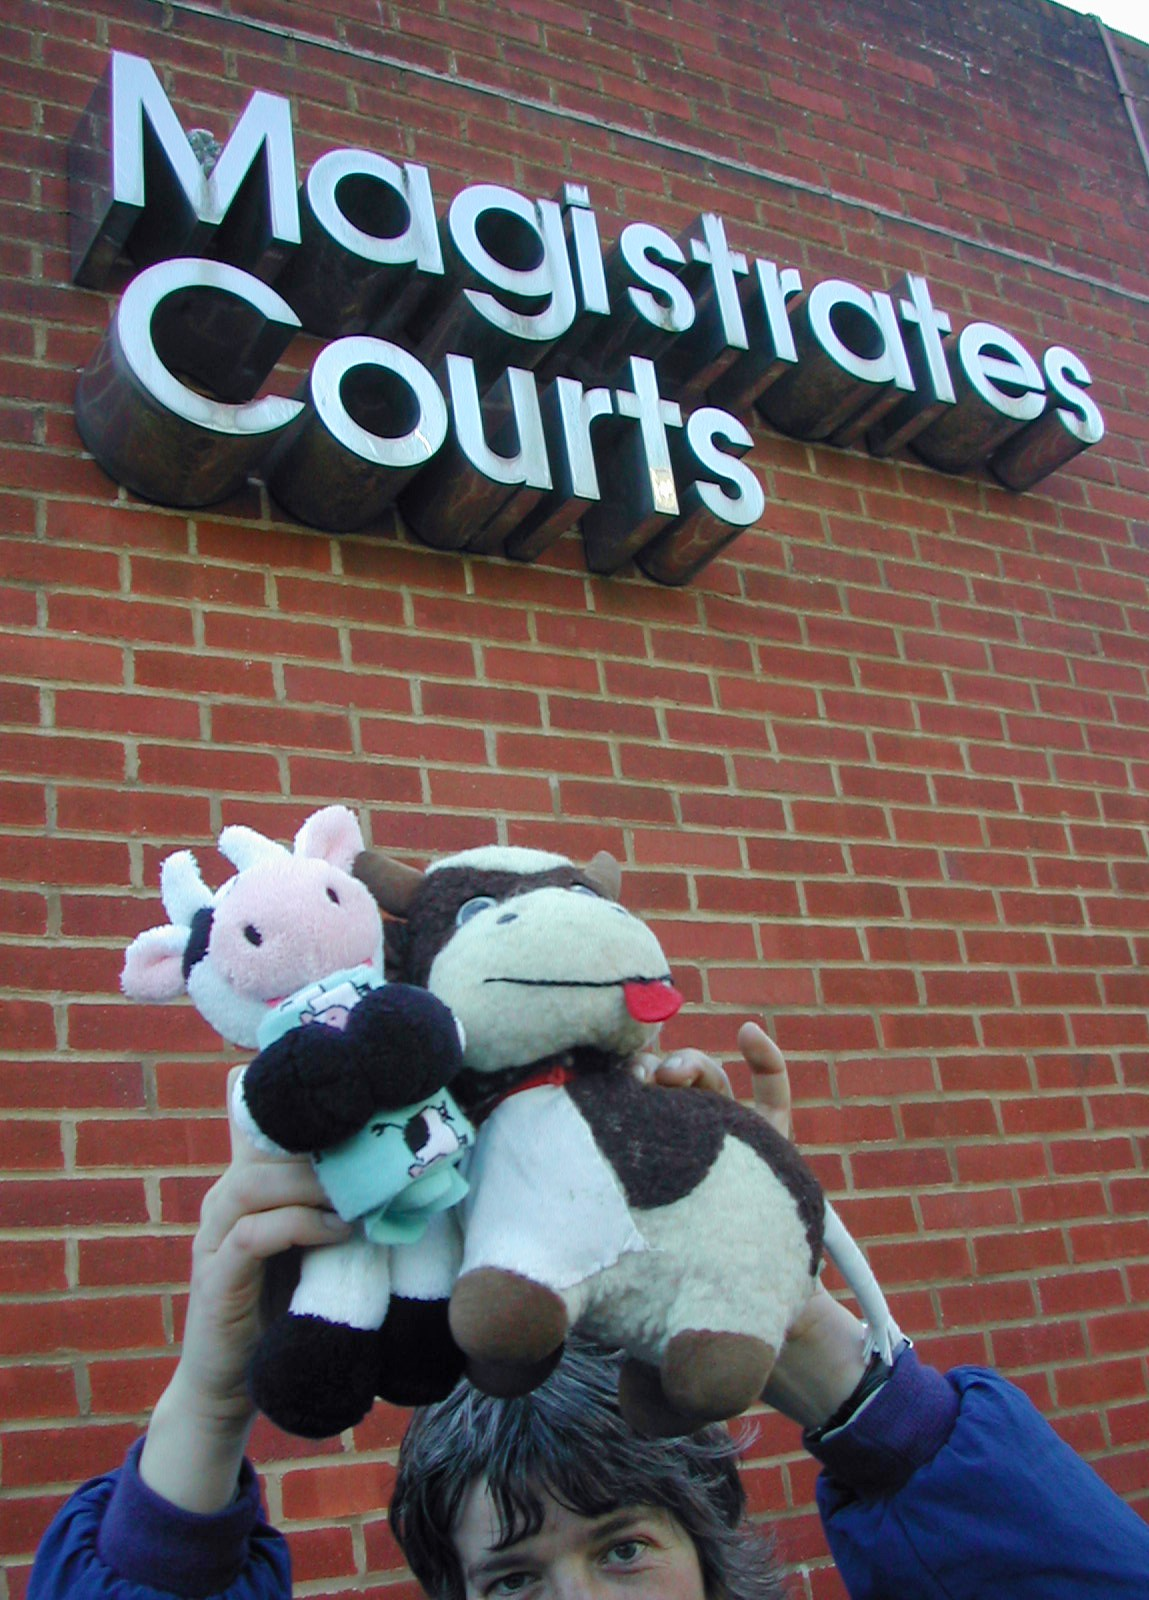 Bonya and Lilith II doing court support at Reading court on 9 March 2009